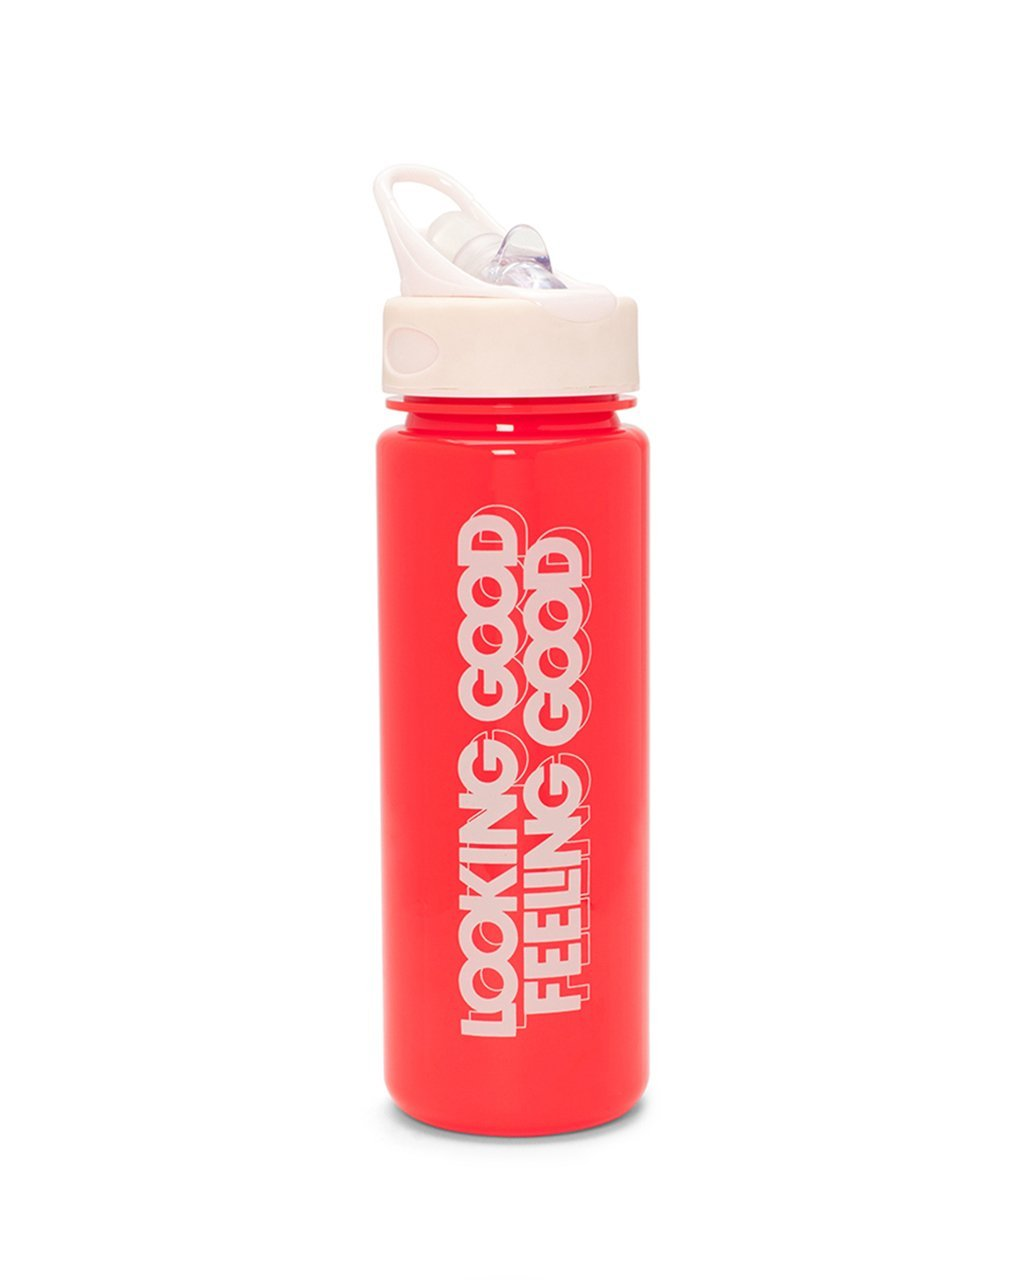 Ban.do Looking Good Feeling Good Water Bottle